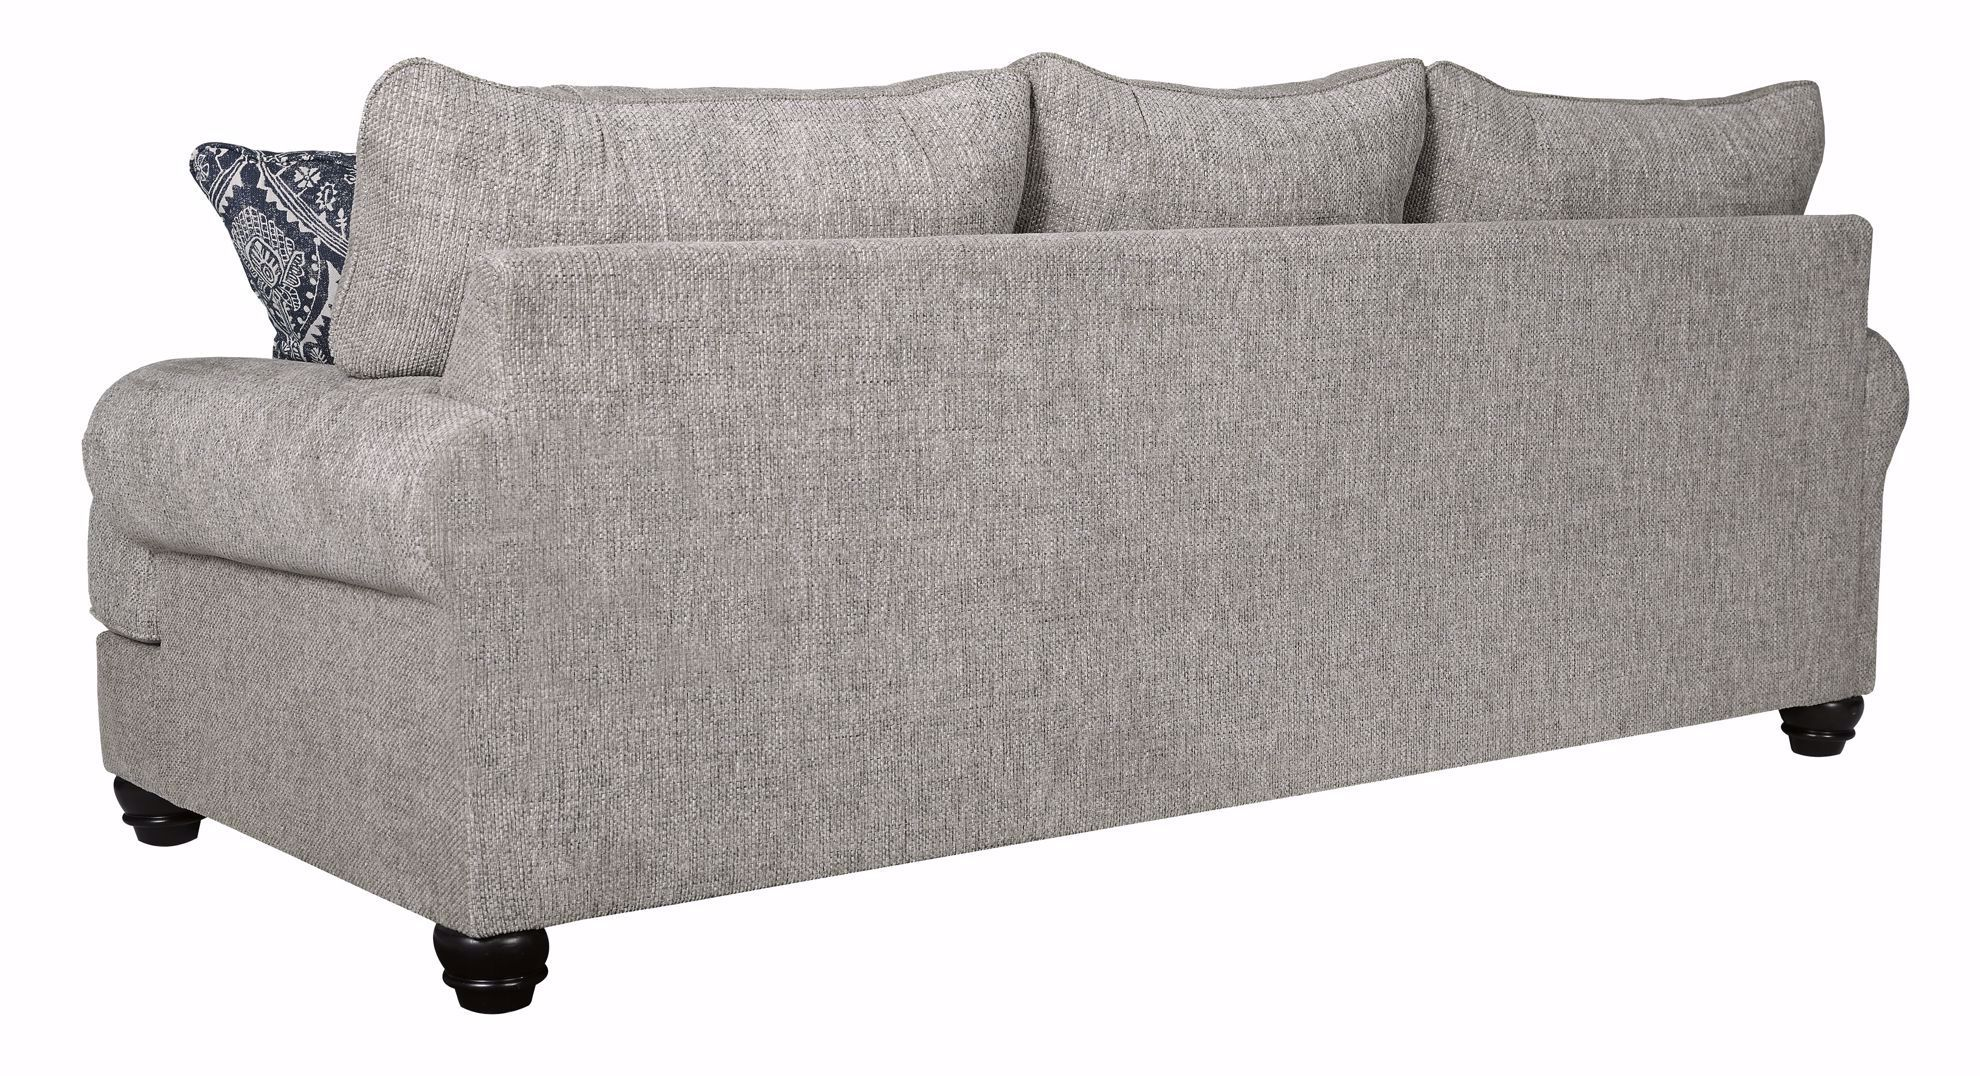 Picture of Morren Dusk Sofa